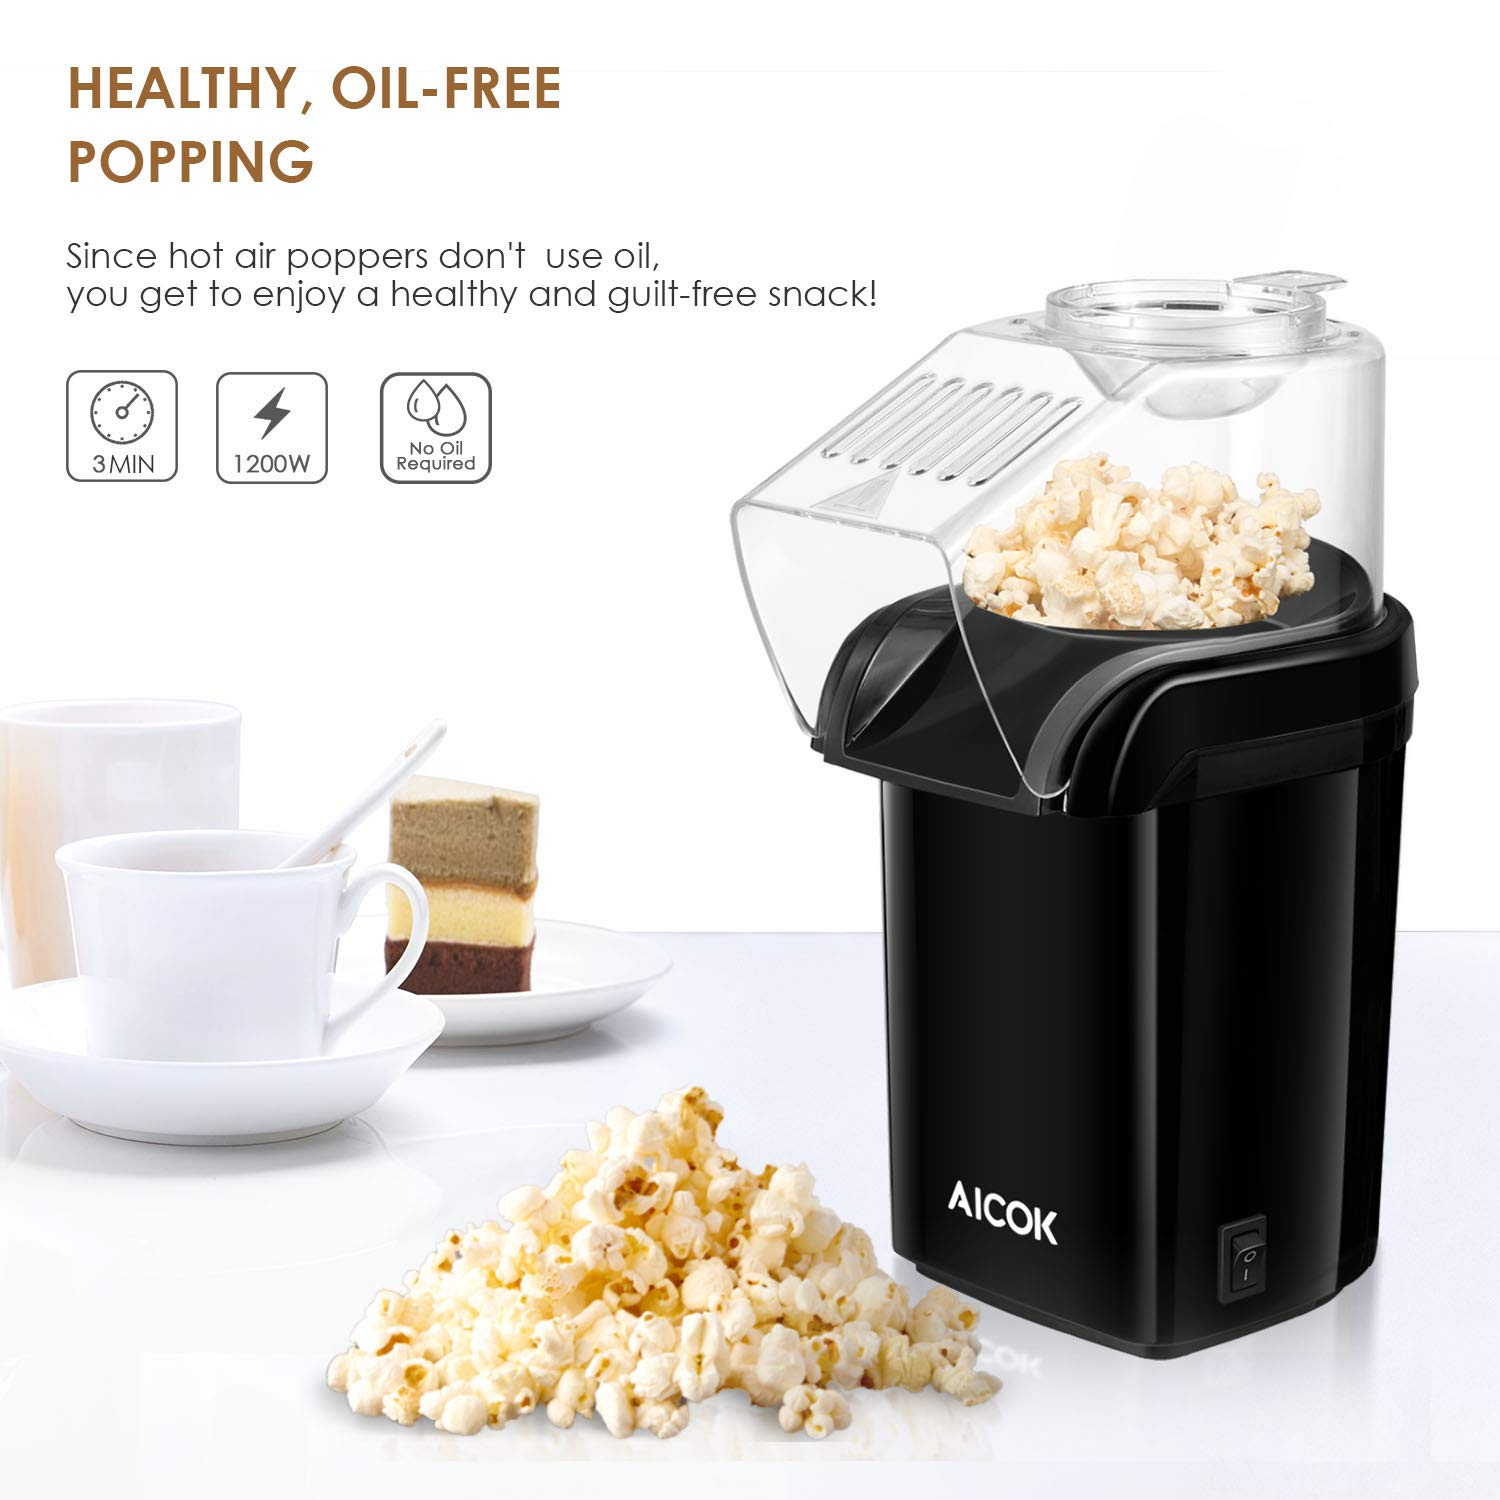 Amazon.com: Hot Air Popcorn Popper, Aicok 1200W Fast Popcorn Maker with Measuring Cup, Removable Lid, No Oil Needed, FDA and ETL Approved, Black: Kitchen & ...